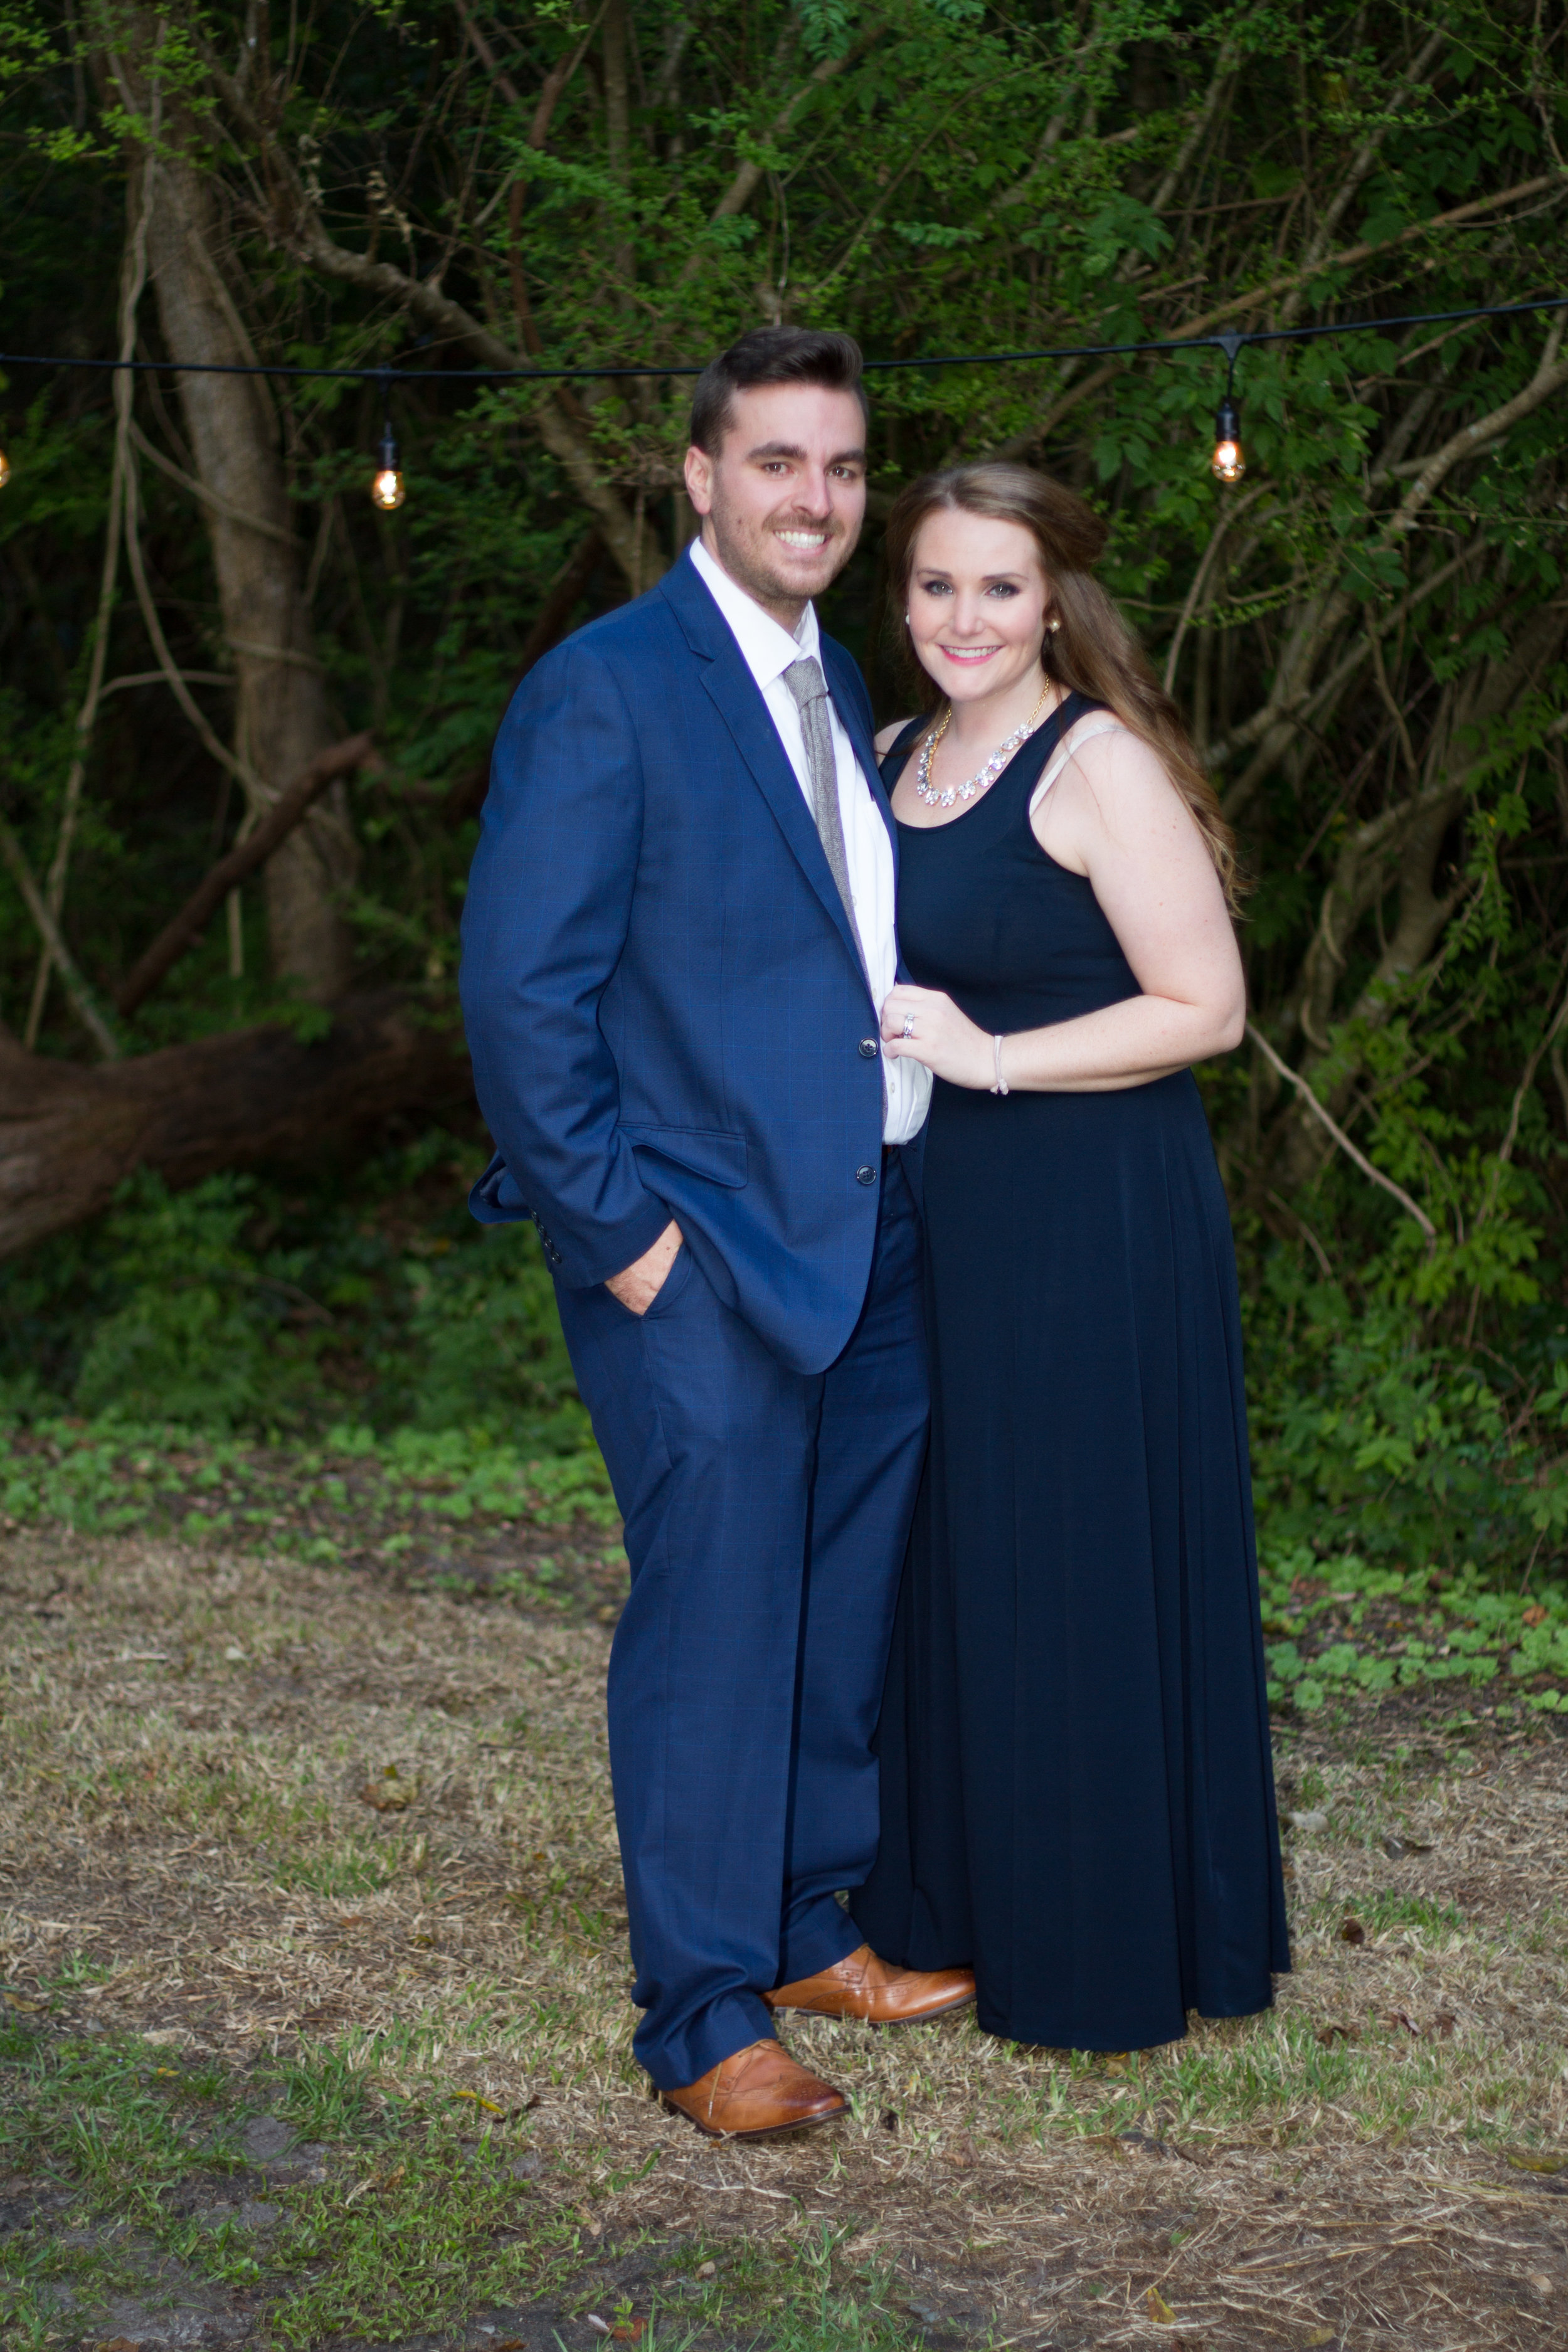 Jacqueline and Shawn Wedding (389 of 597).jpg